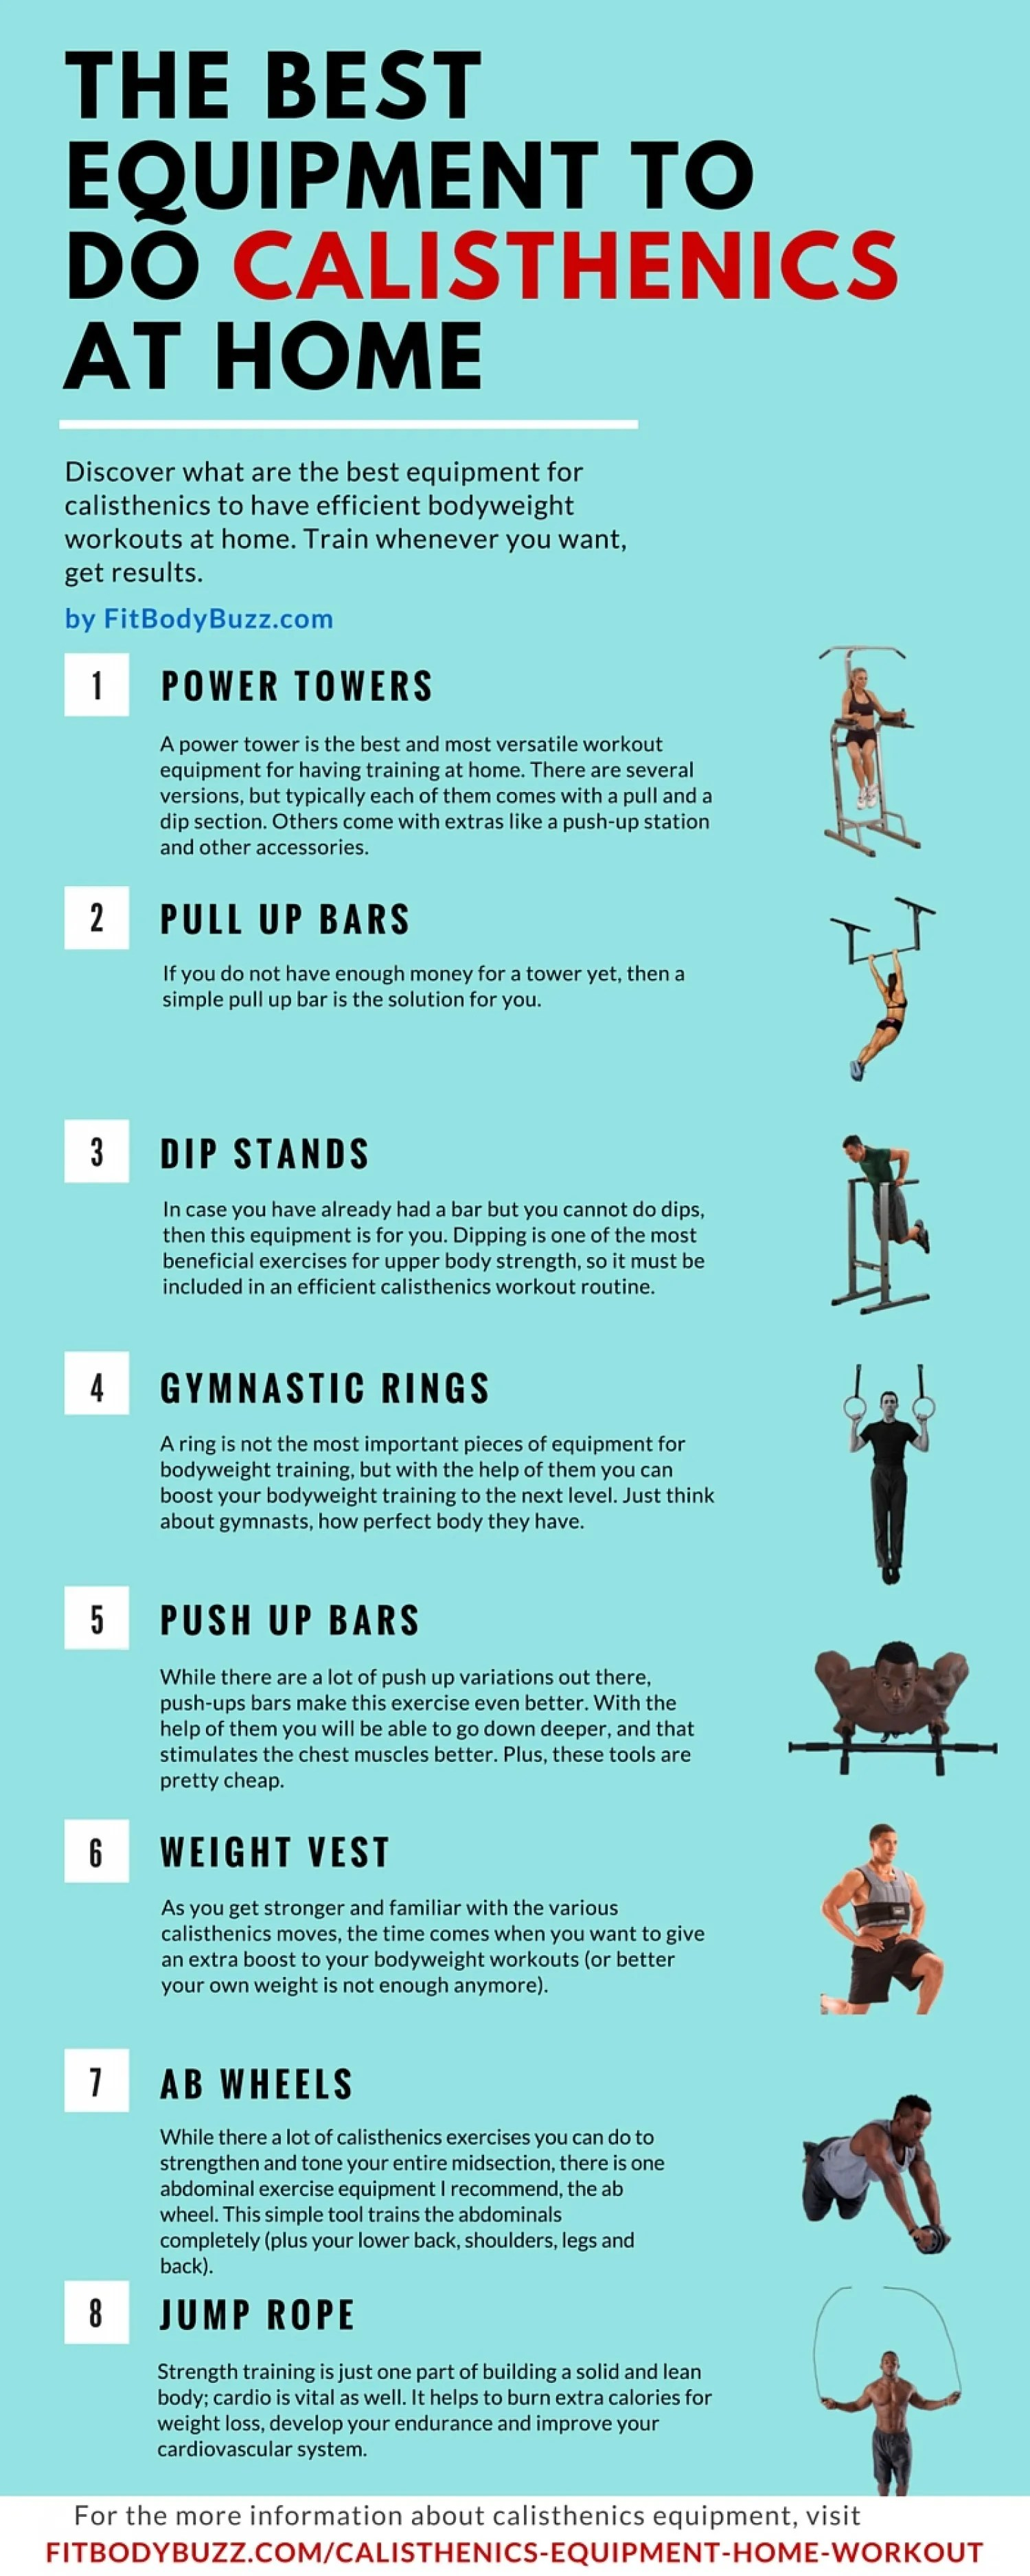 The Best Equipment To Do Calisthenics At Home Infographic Facts